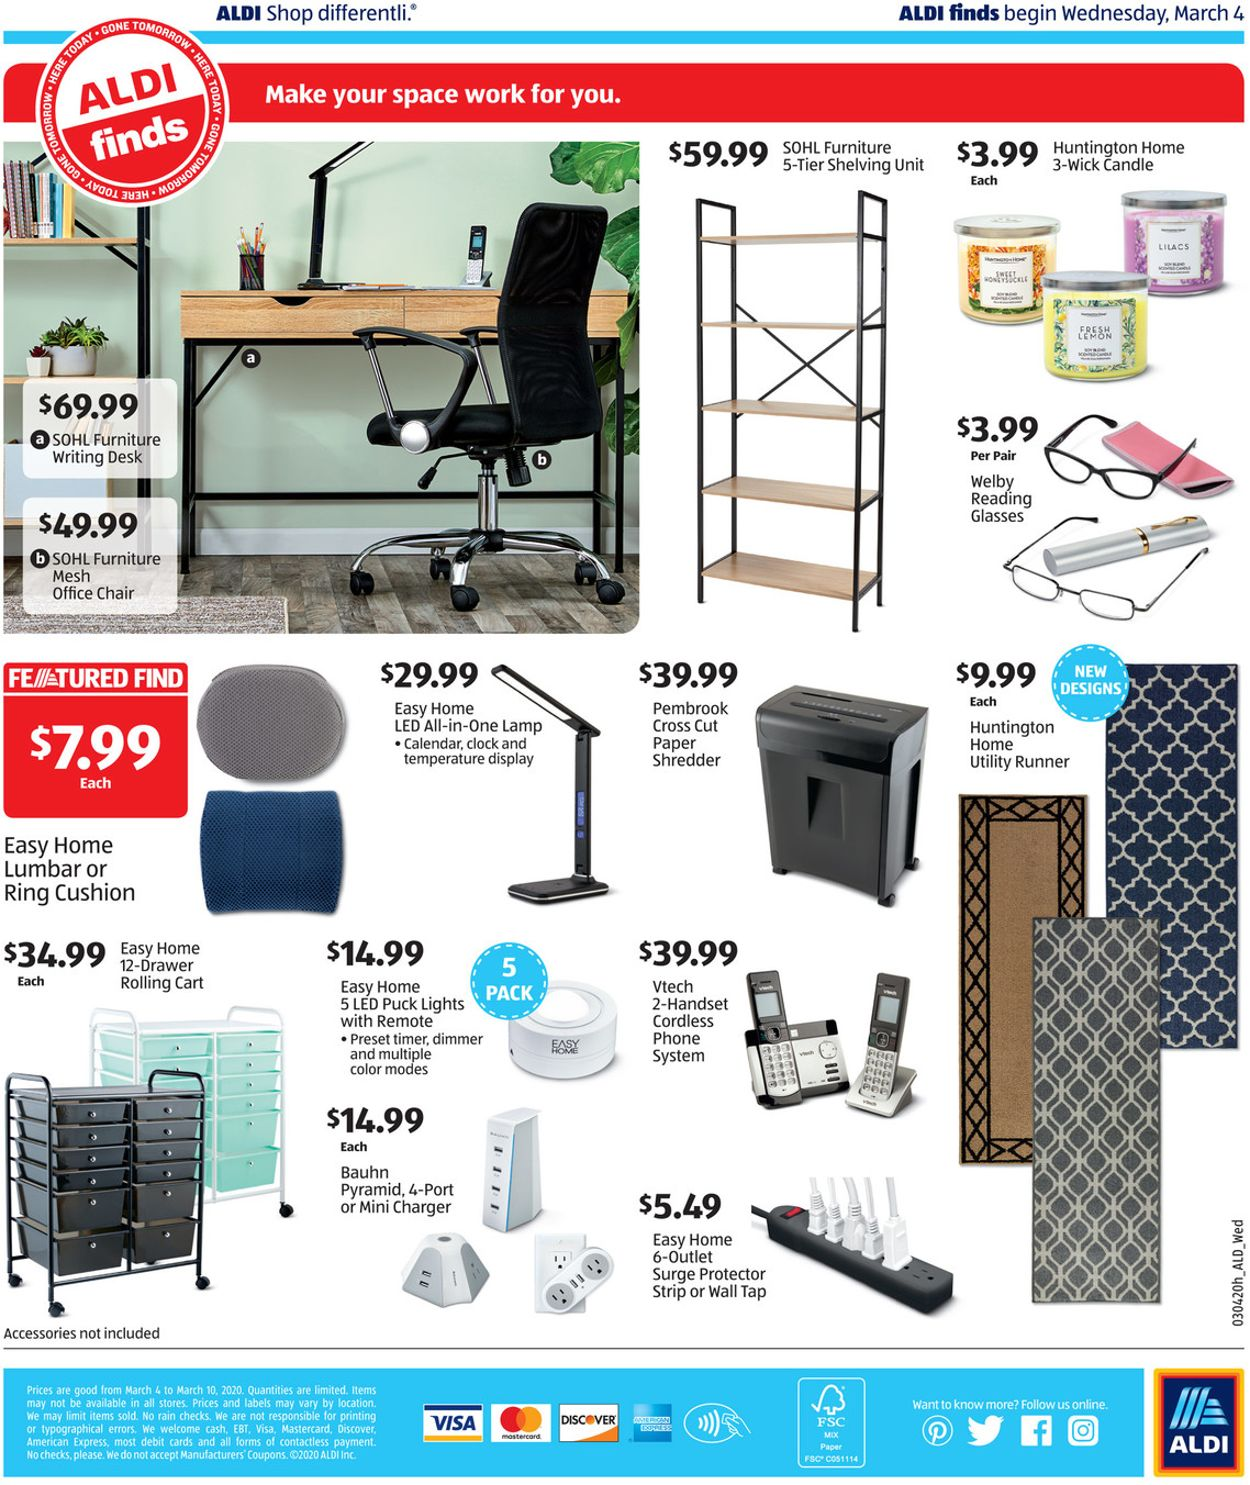 ALDI Current weekly ad 466/466 - 466/466/466 [46] - frequent-ads.com